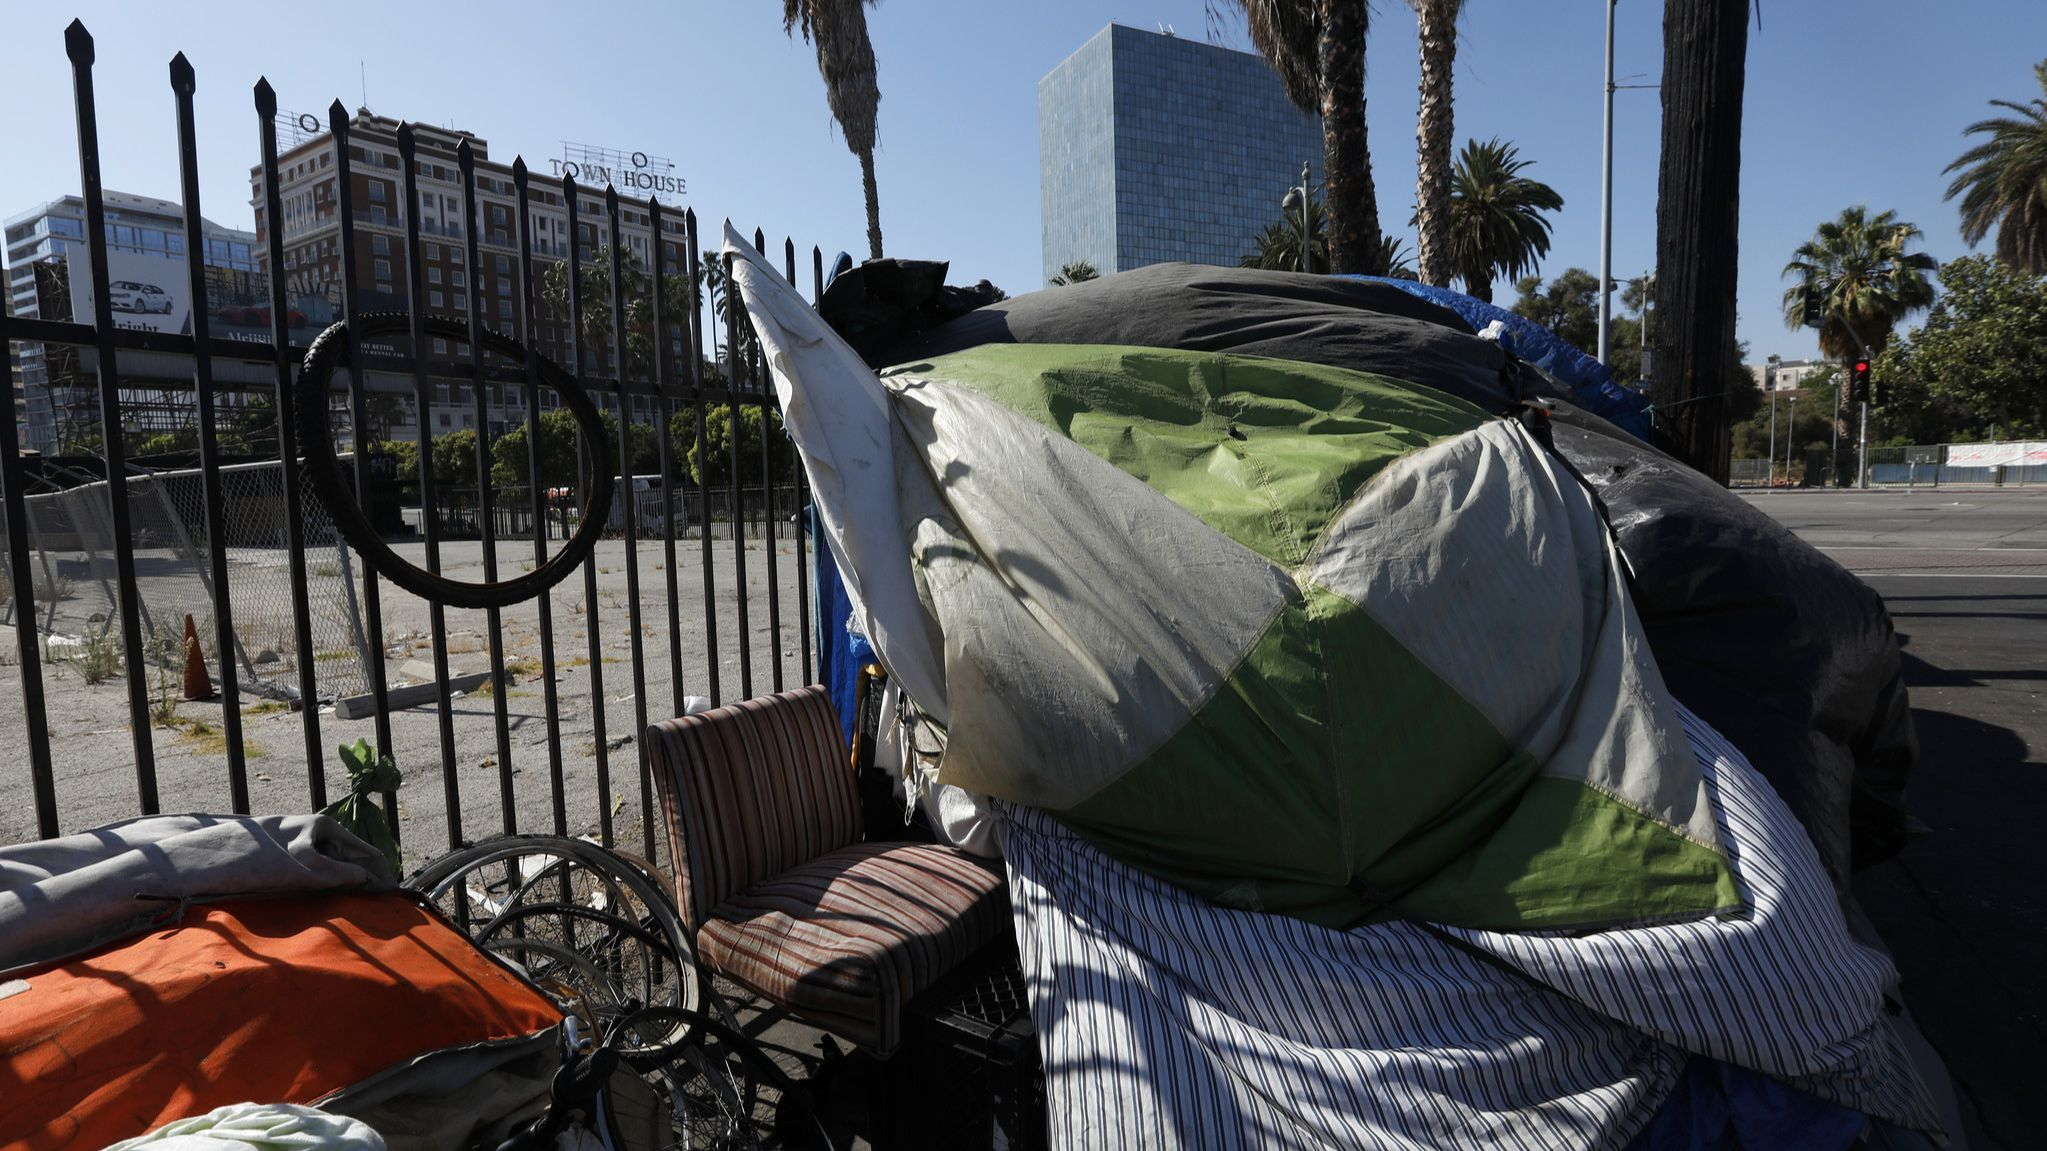 Cities may not prosecute homeless people for sleeping outside if they have no access to shelter, appeals court rules